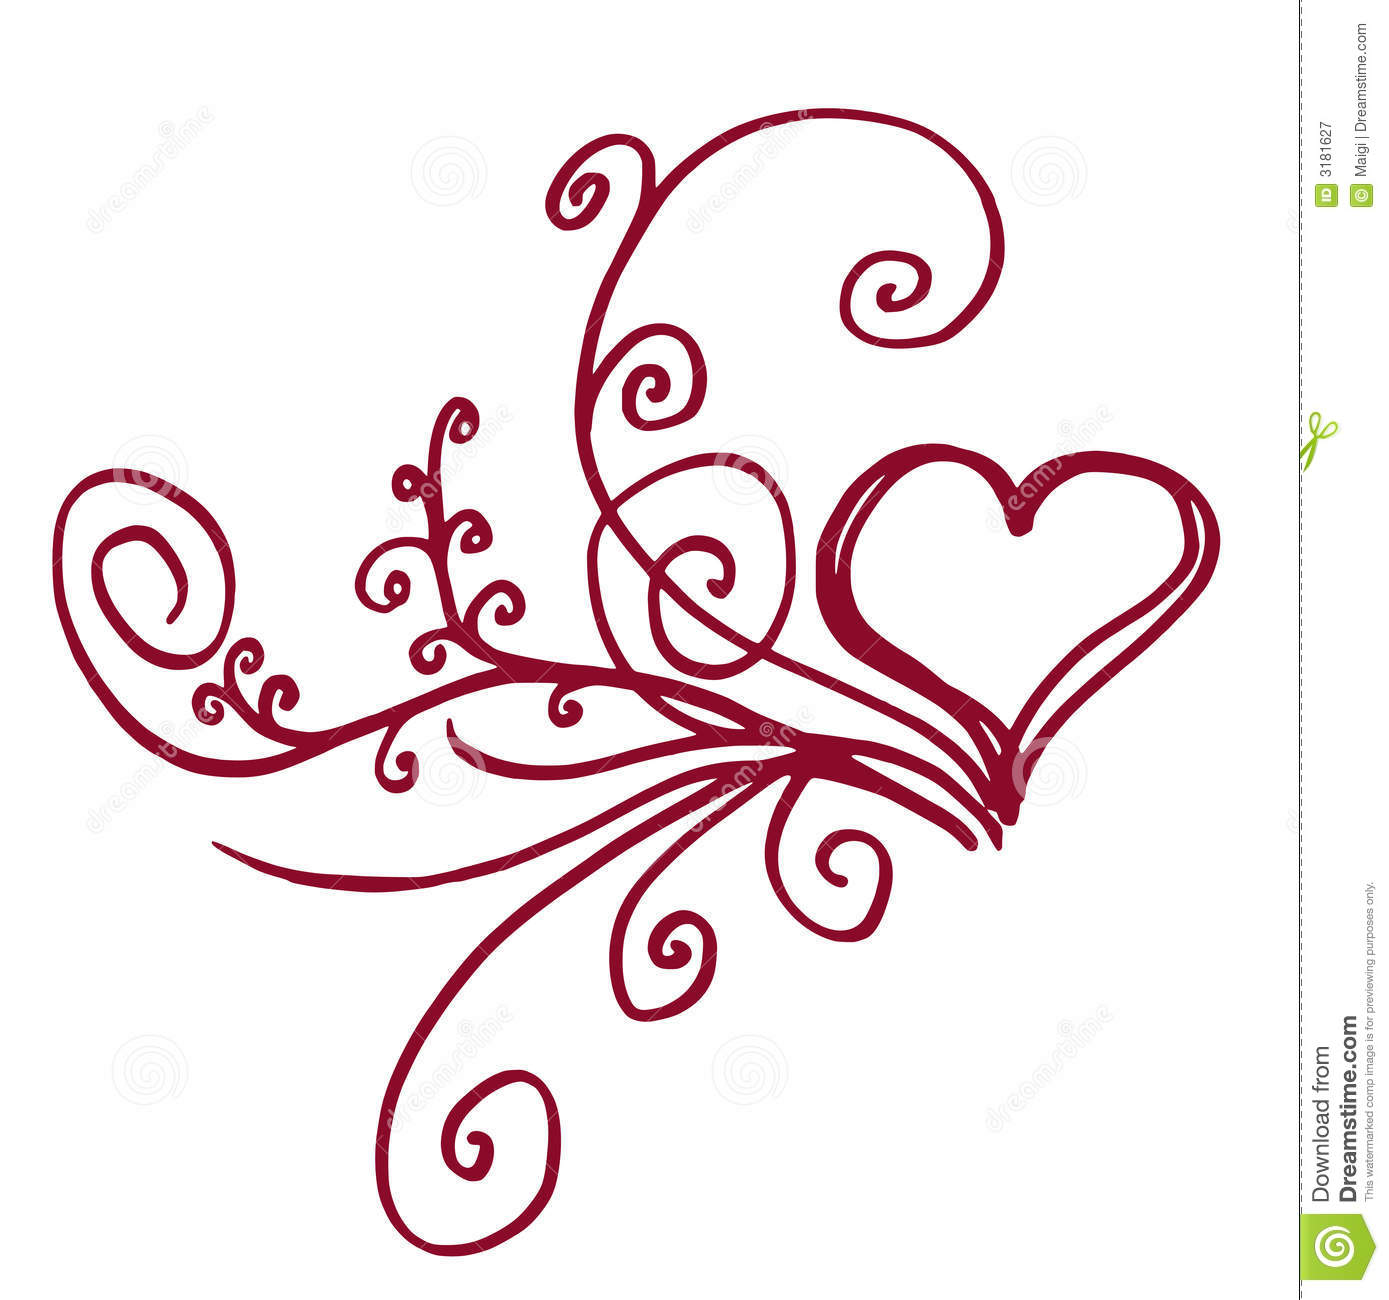 Floral Heart Royalty Free Stock Photography Image 3181627